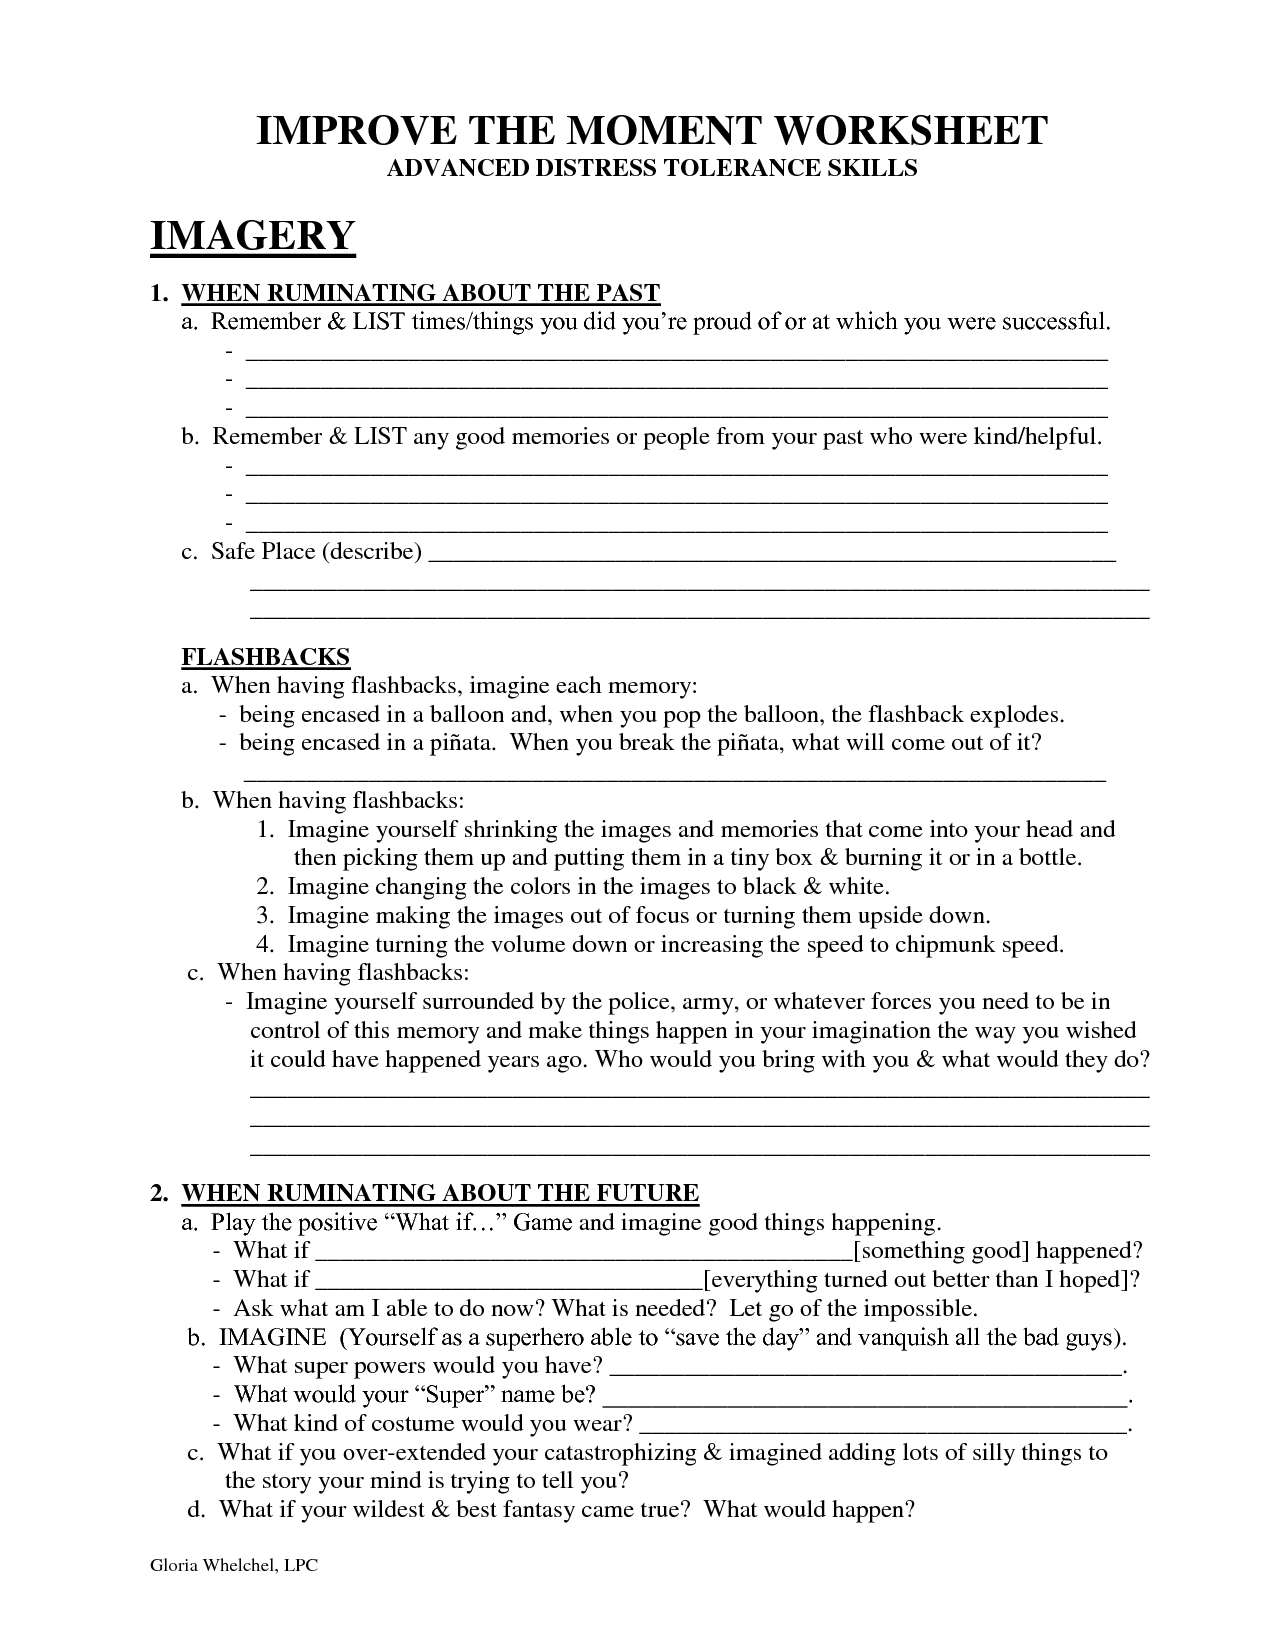 Worksheets Building Self Esteem Worksheets improve the moment worksheet dbt self help therapy parenting a damaged esteem can wreck your career and harm relationships you turn